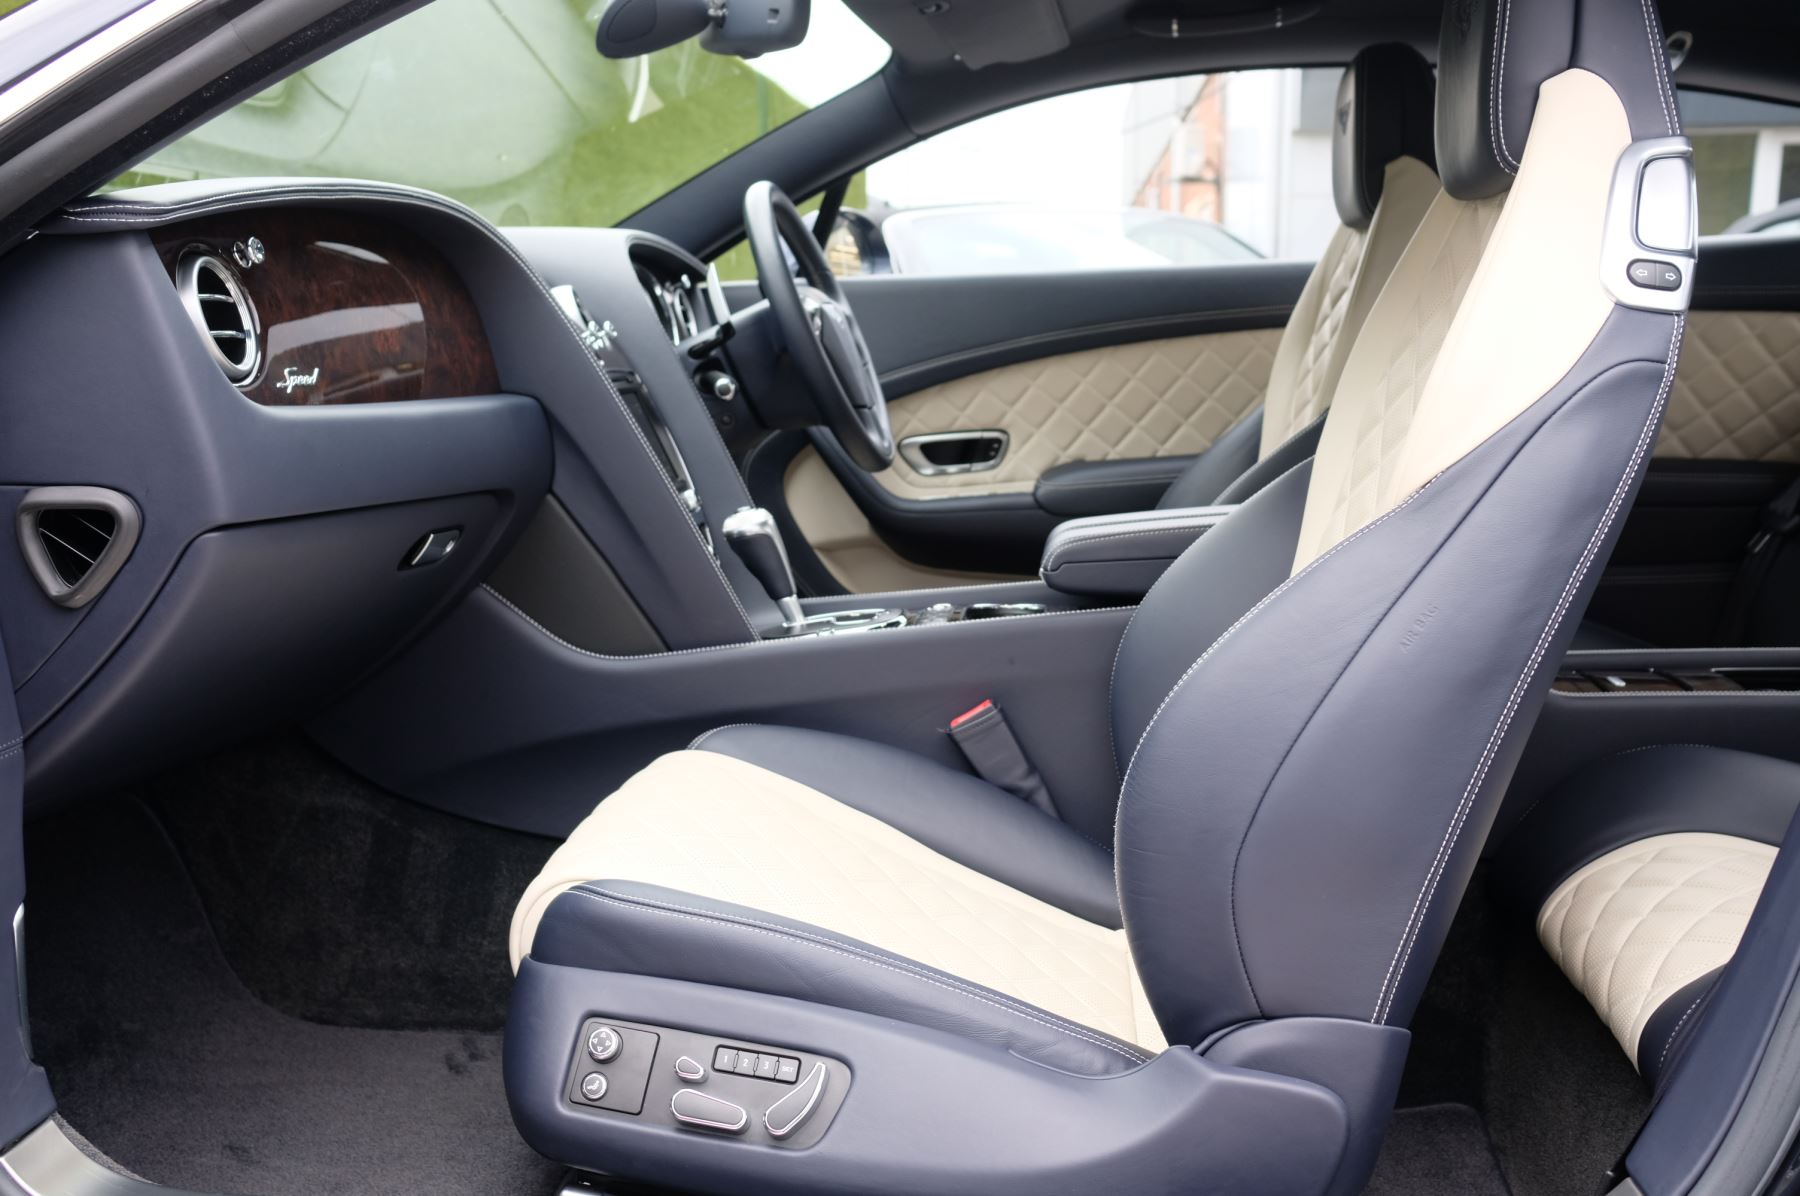 Bentley Continental GT 6.0 W12 [635] Speed - 21 inch Directional Sports Alloys - Ventilated Front Seats with Massage image 18